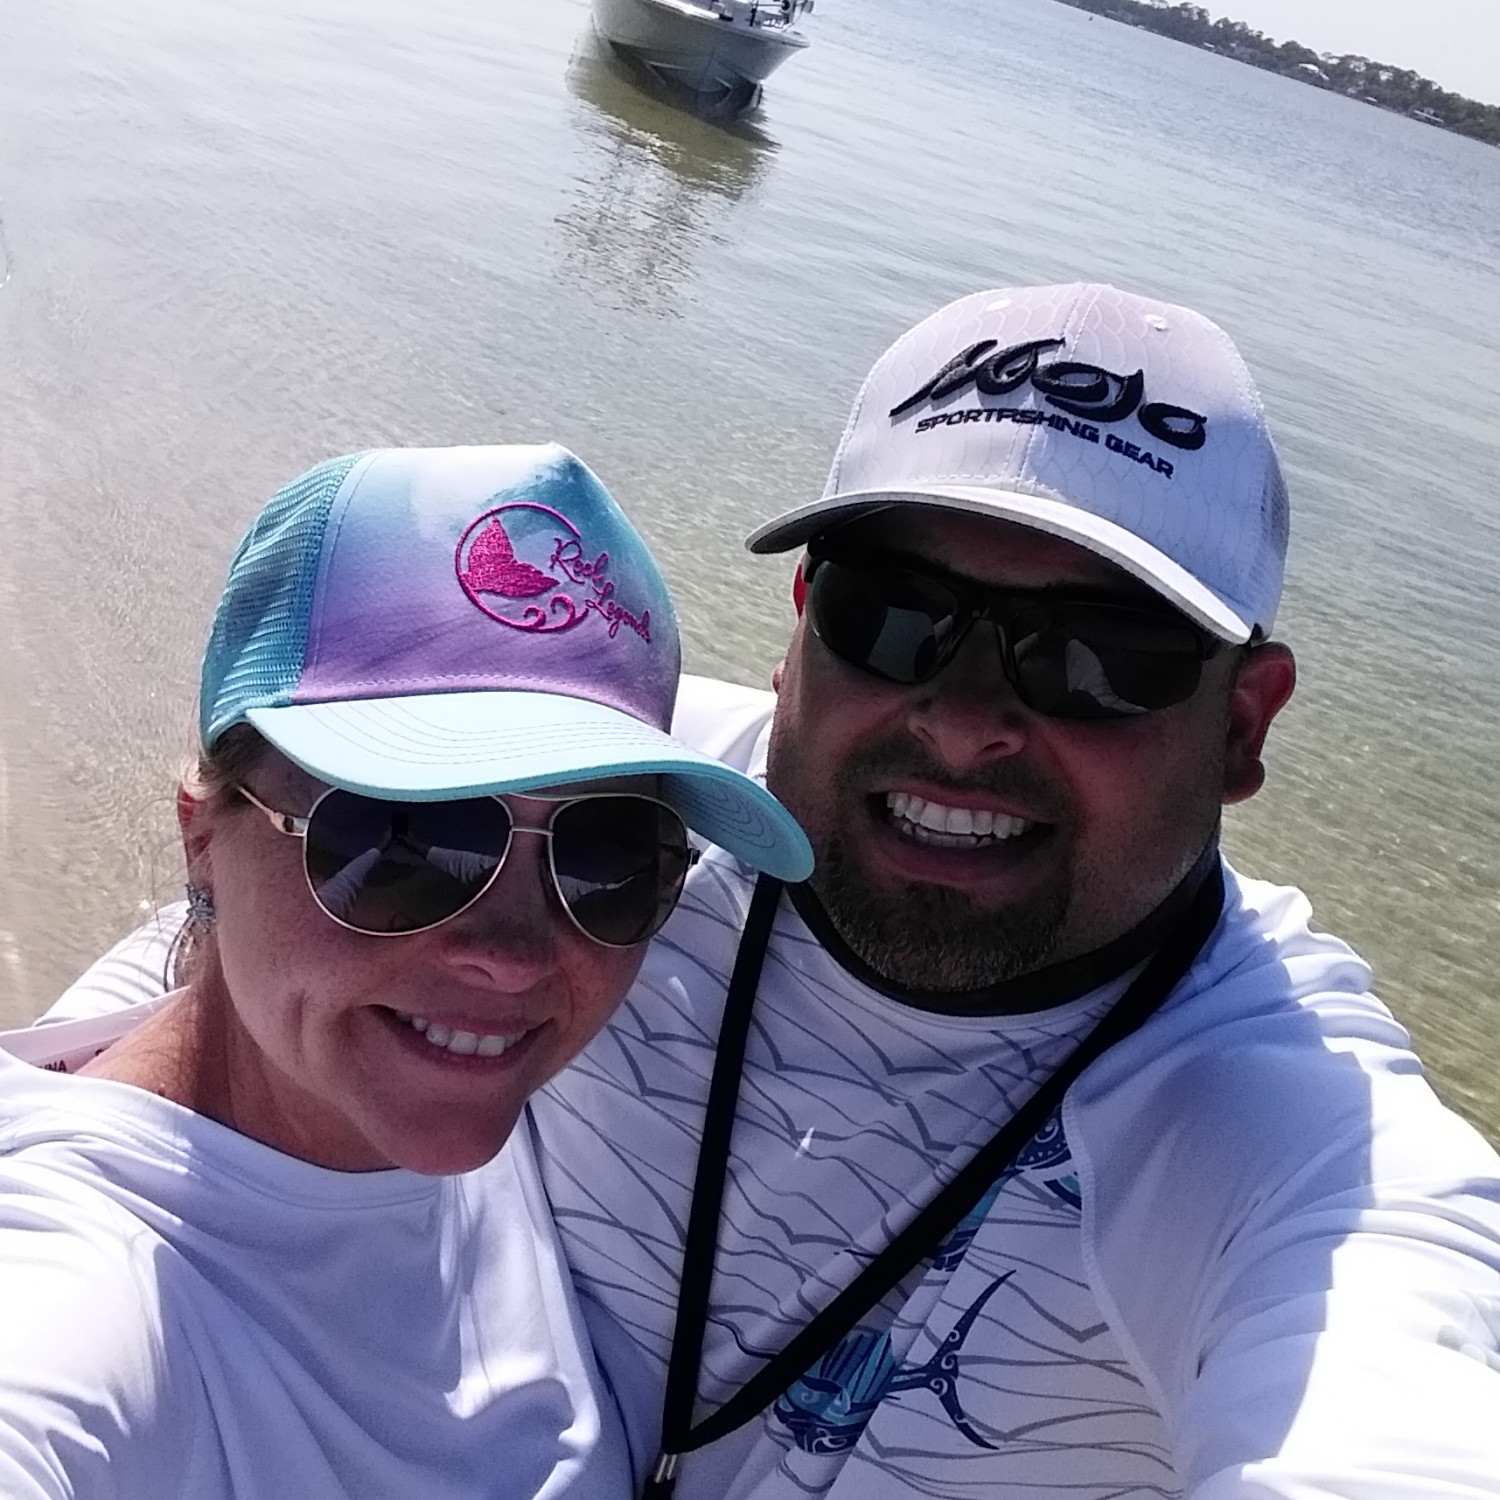 Title: Loving our boat - On board their Sportsman Island Bay 20 Bay Boat - Location: Destin Fl. Participating in the Photo Contest #SportsmanMay2018